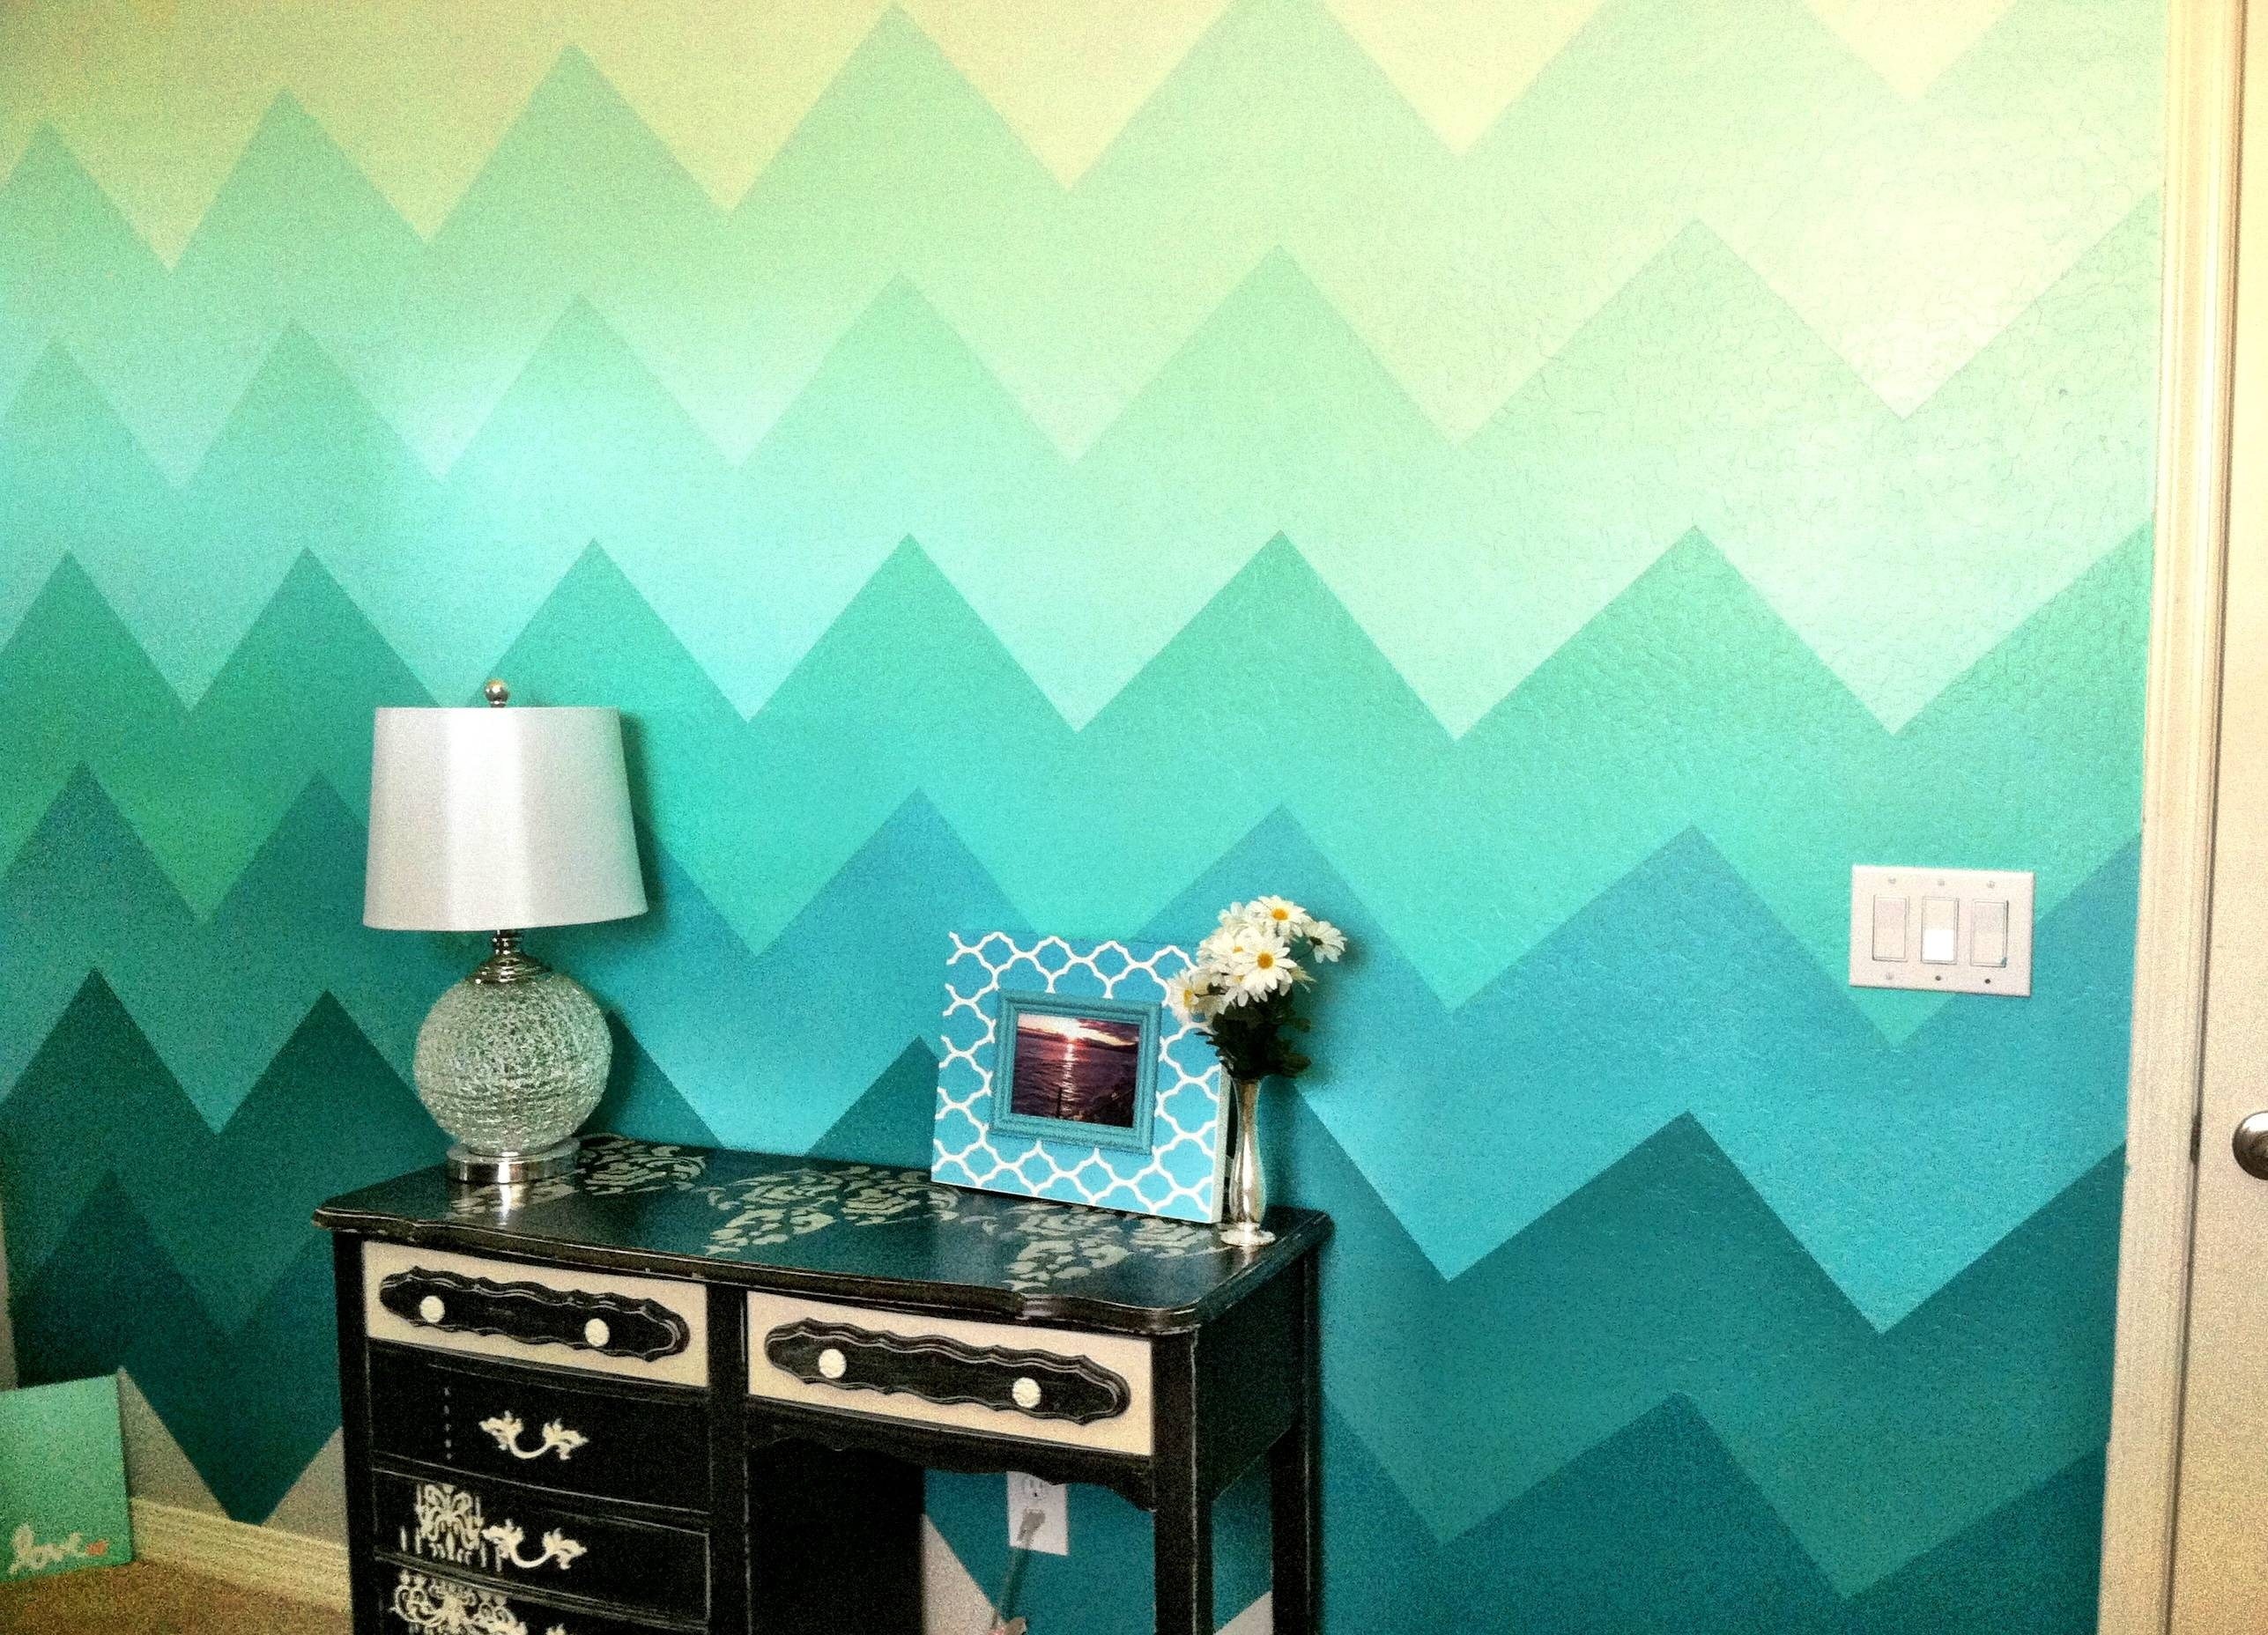 Bedroom : Where To Buy Wall Art Master Bedroom Wall Decor Dining Throughout Most Recent Large Inexpensive Wall Art (View 5 of 20)